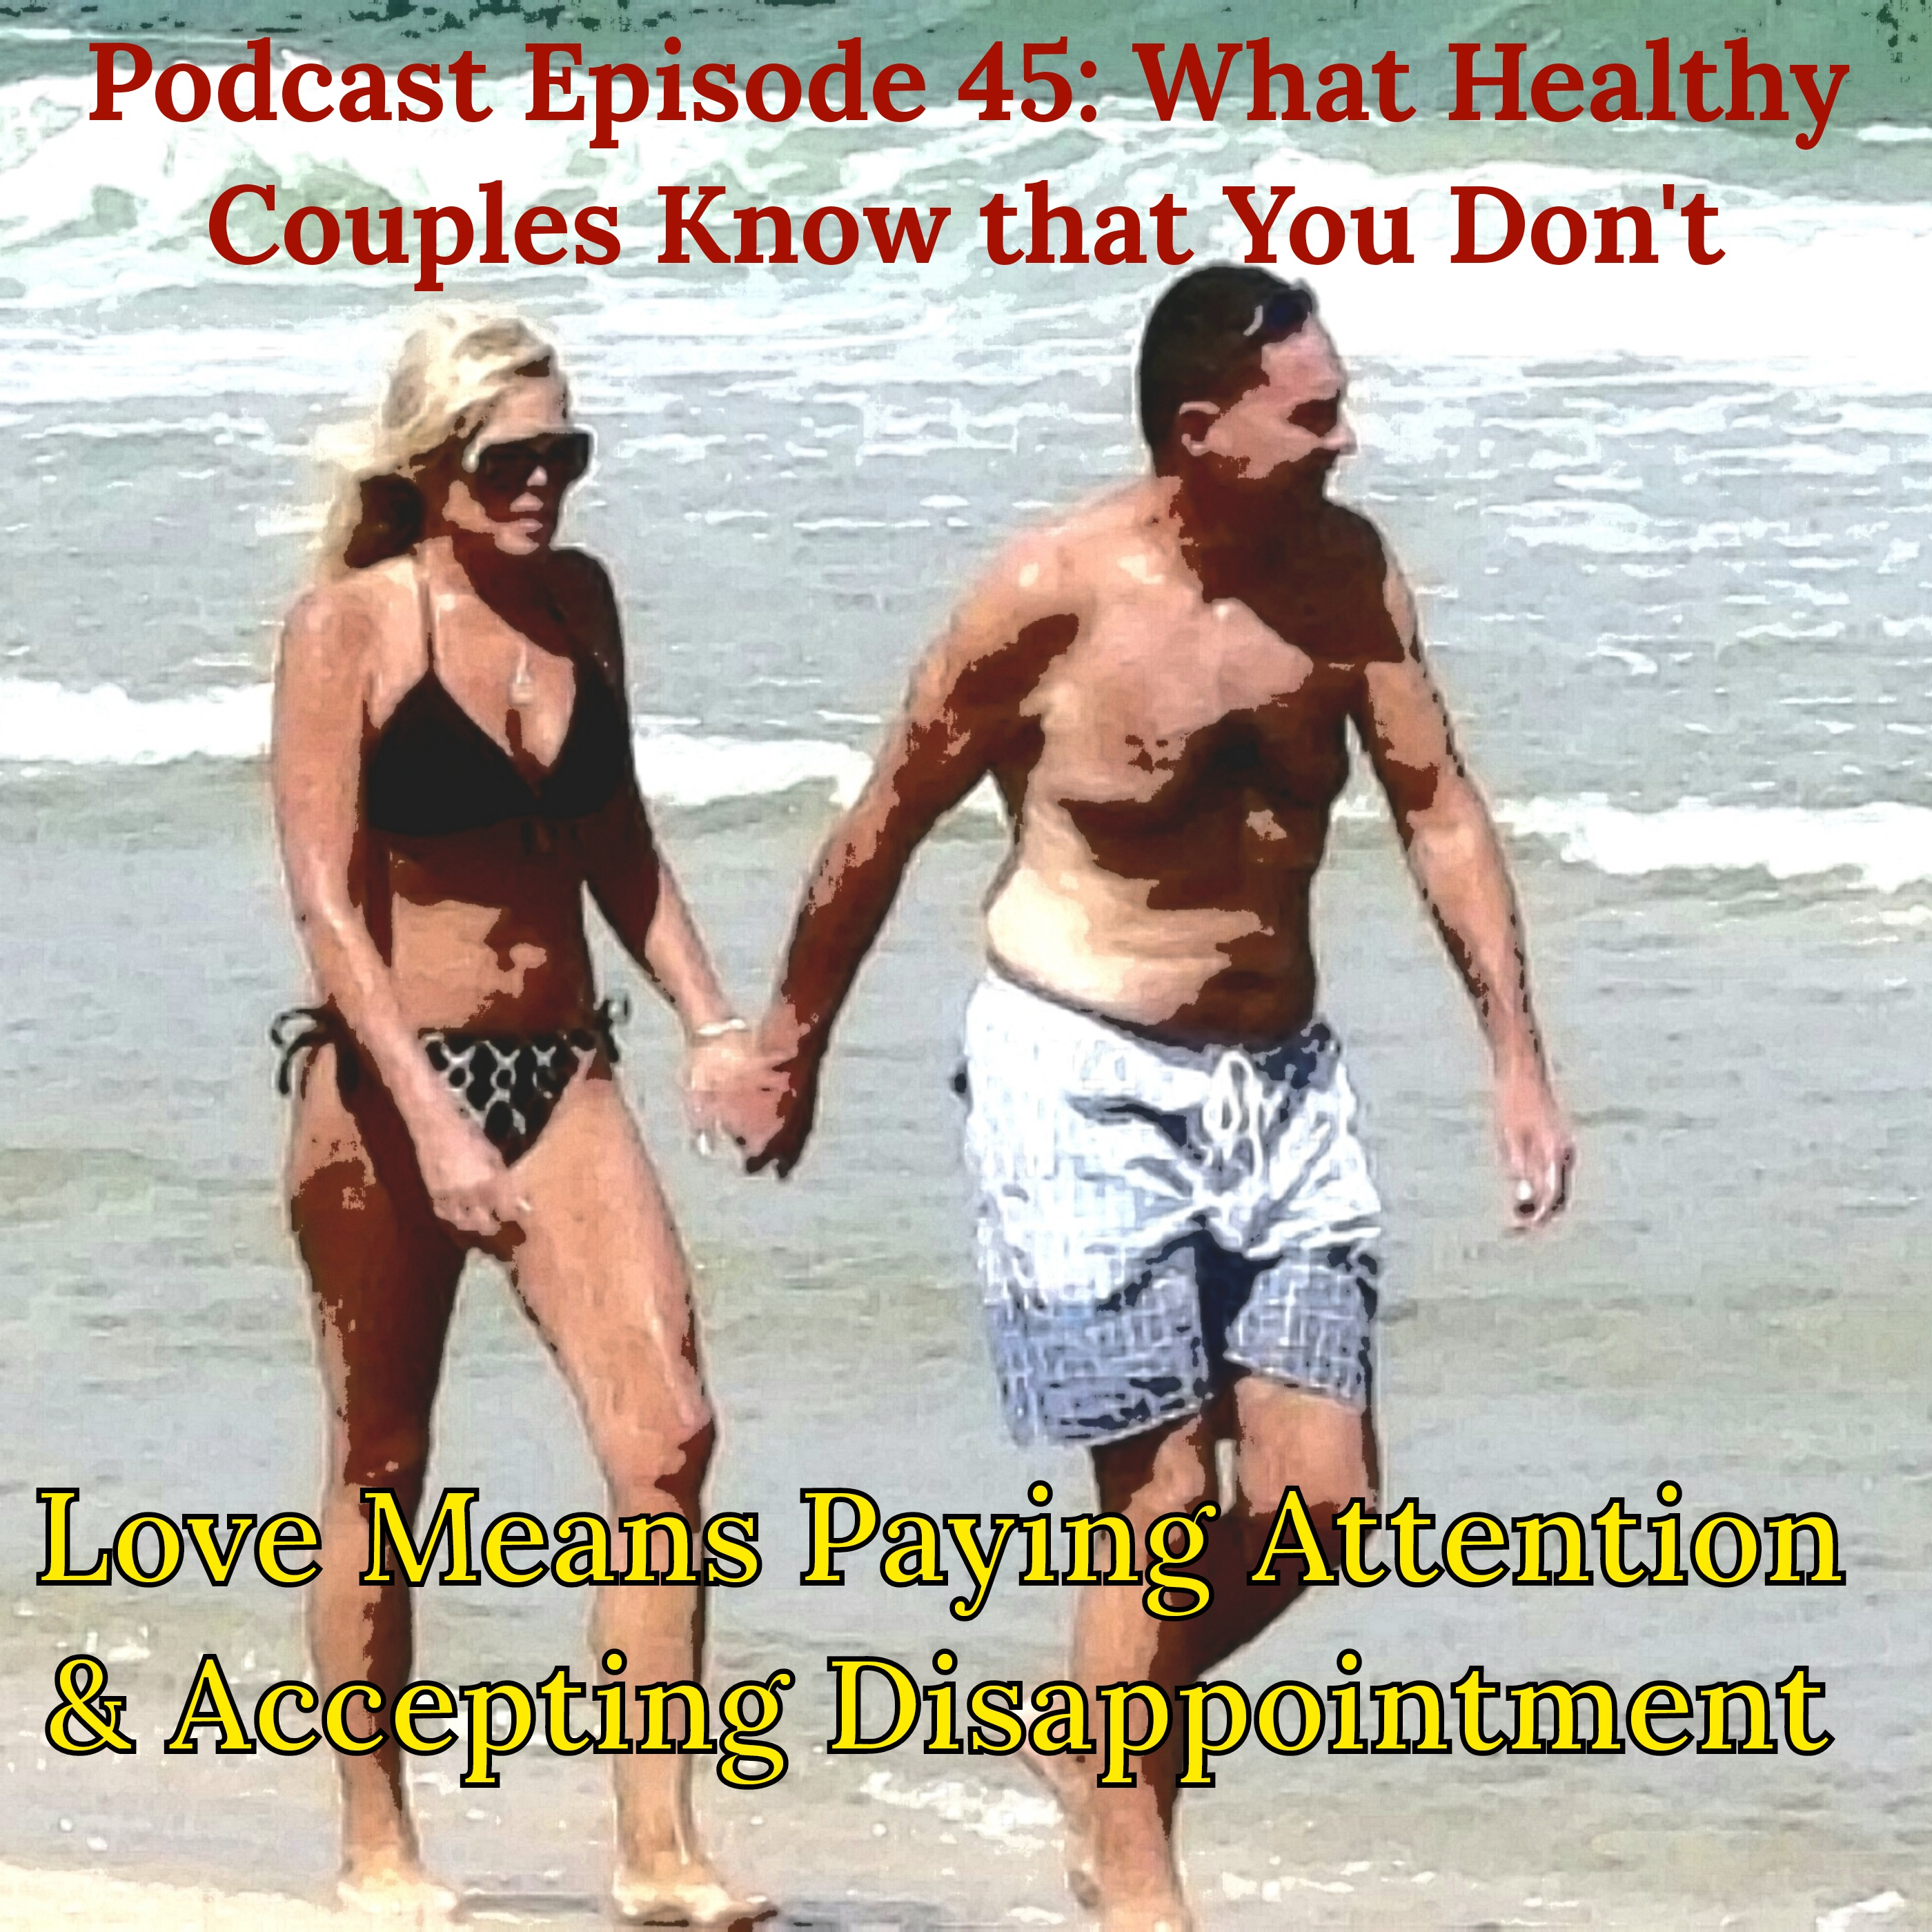 What Healthy Couples Know That You Don't - Love Means Paying Attention & Accepting Disappointment